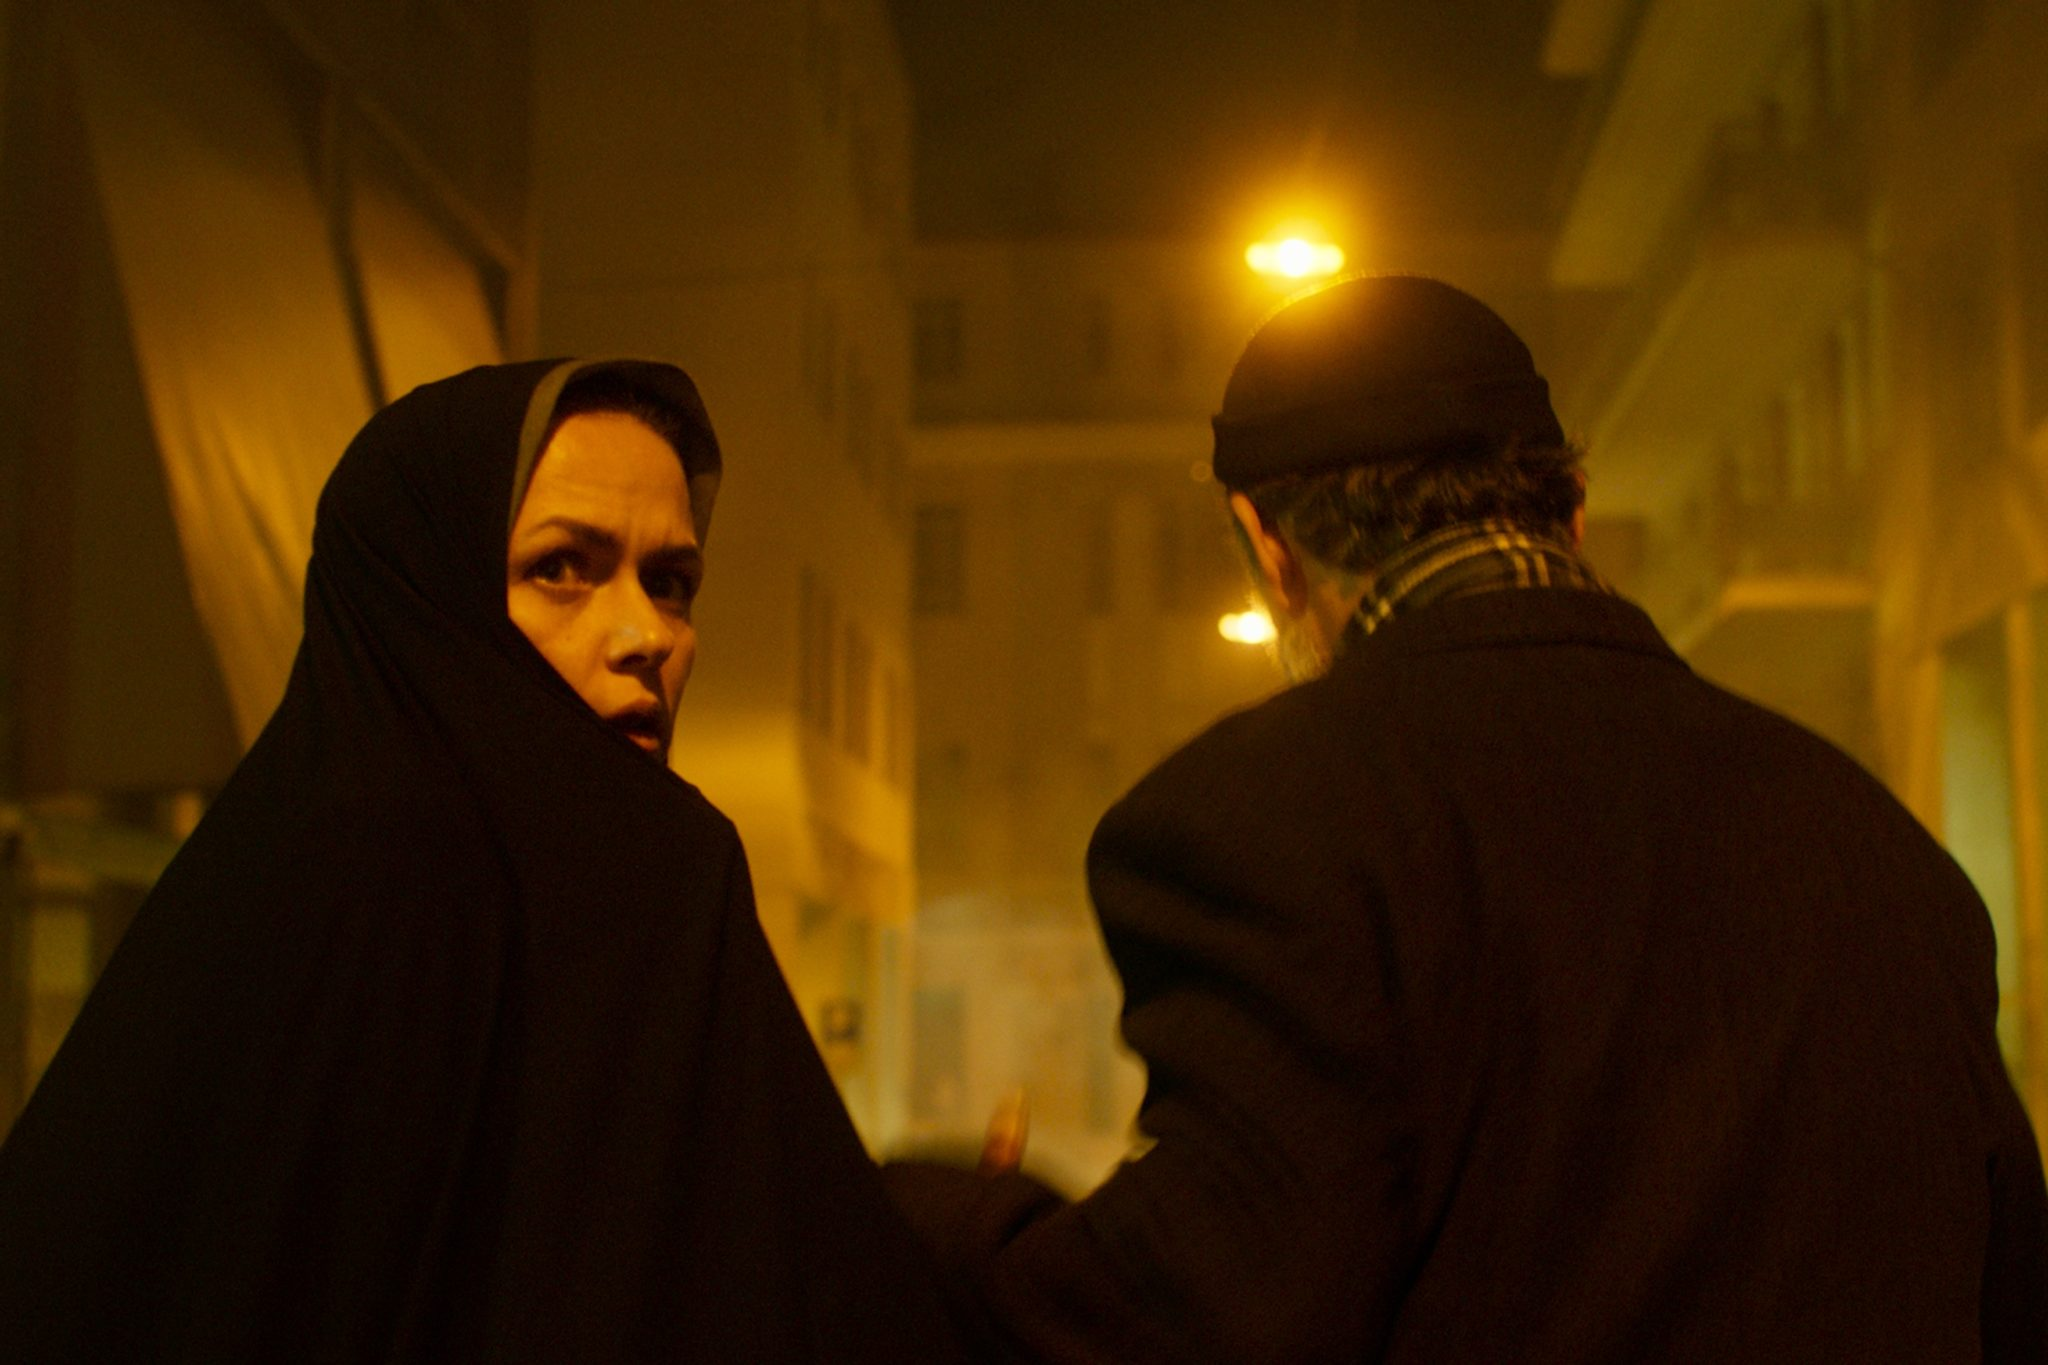 Berlinale and IFFR premieres for two Heretic projects!